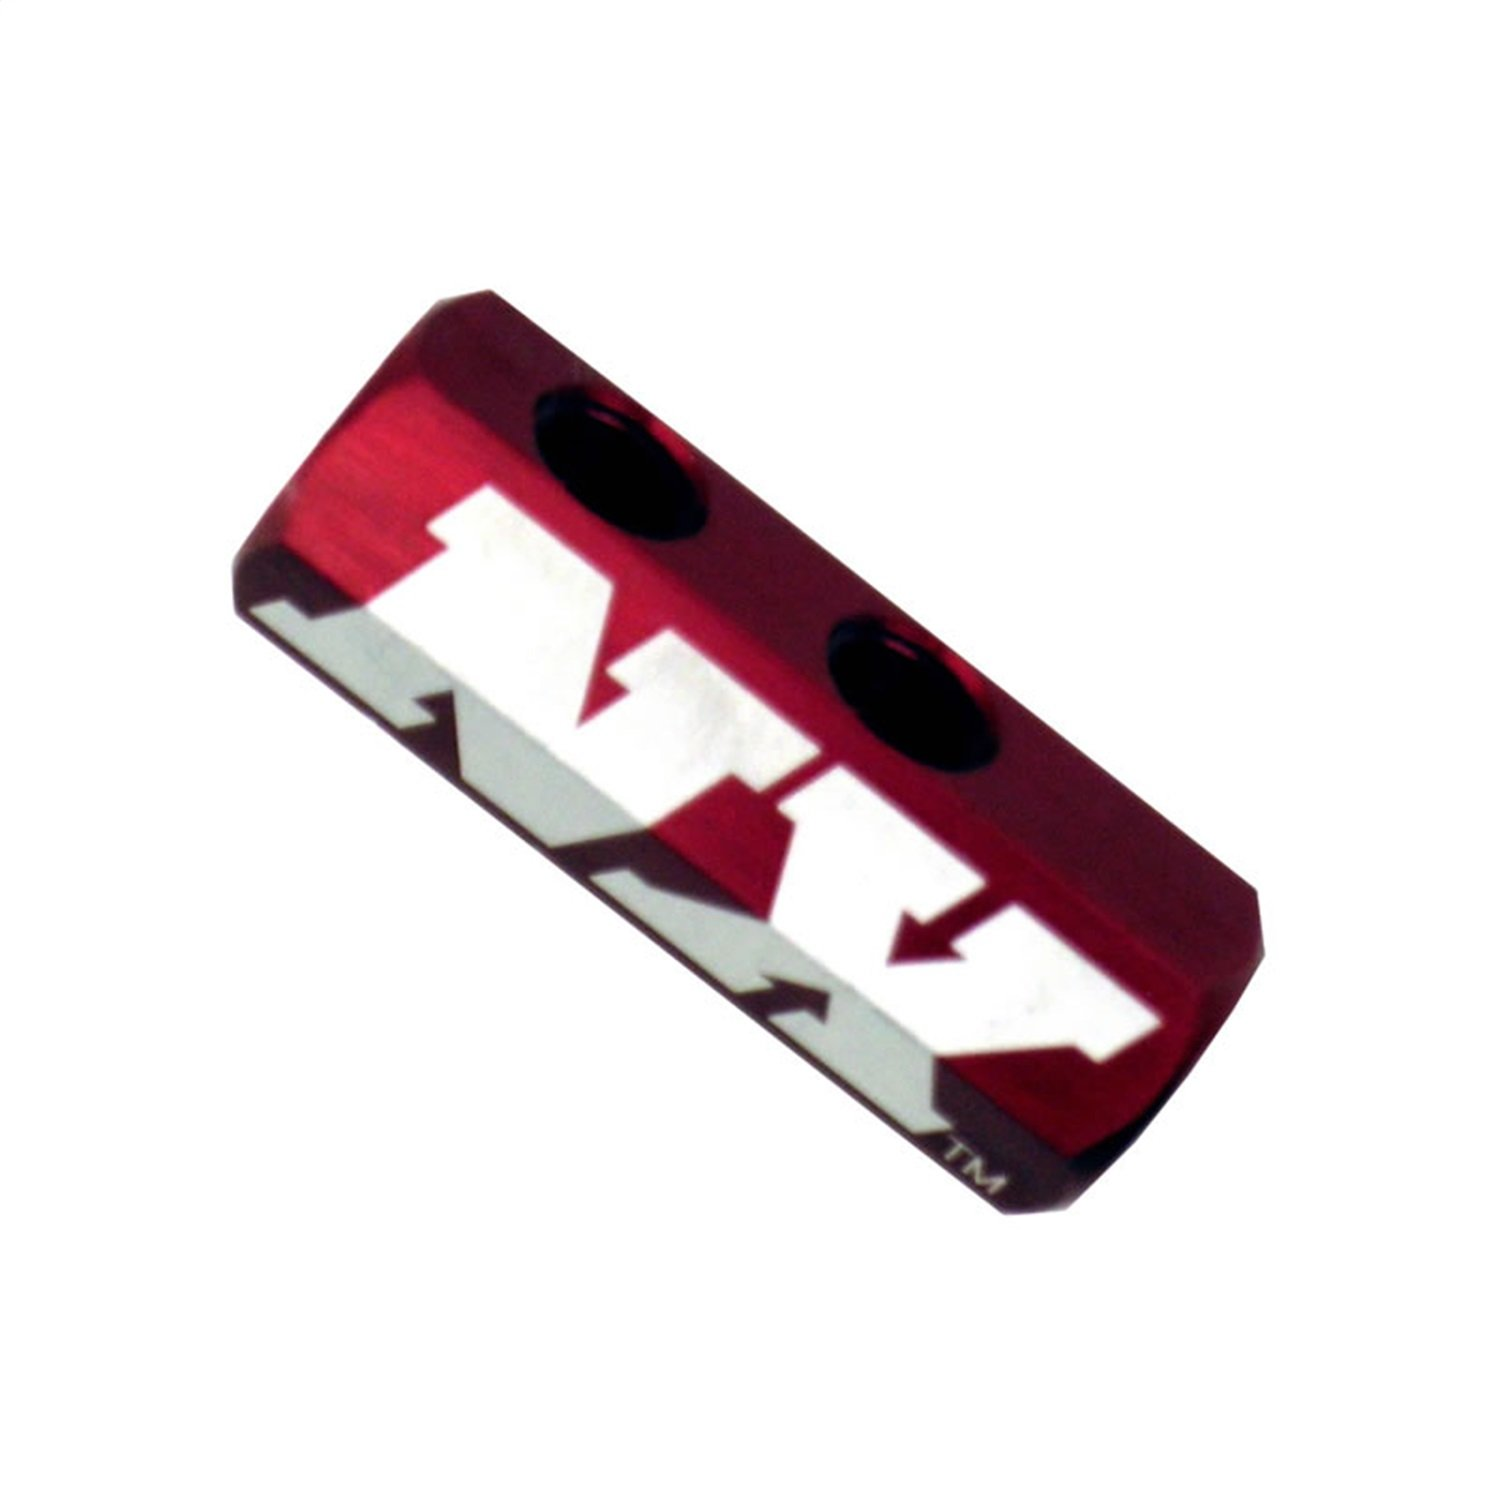 4 Out Distribution Hexagon Distribution Block Nitrous Express 16173R Red 1 In